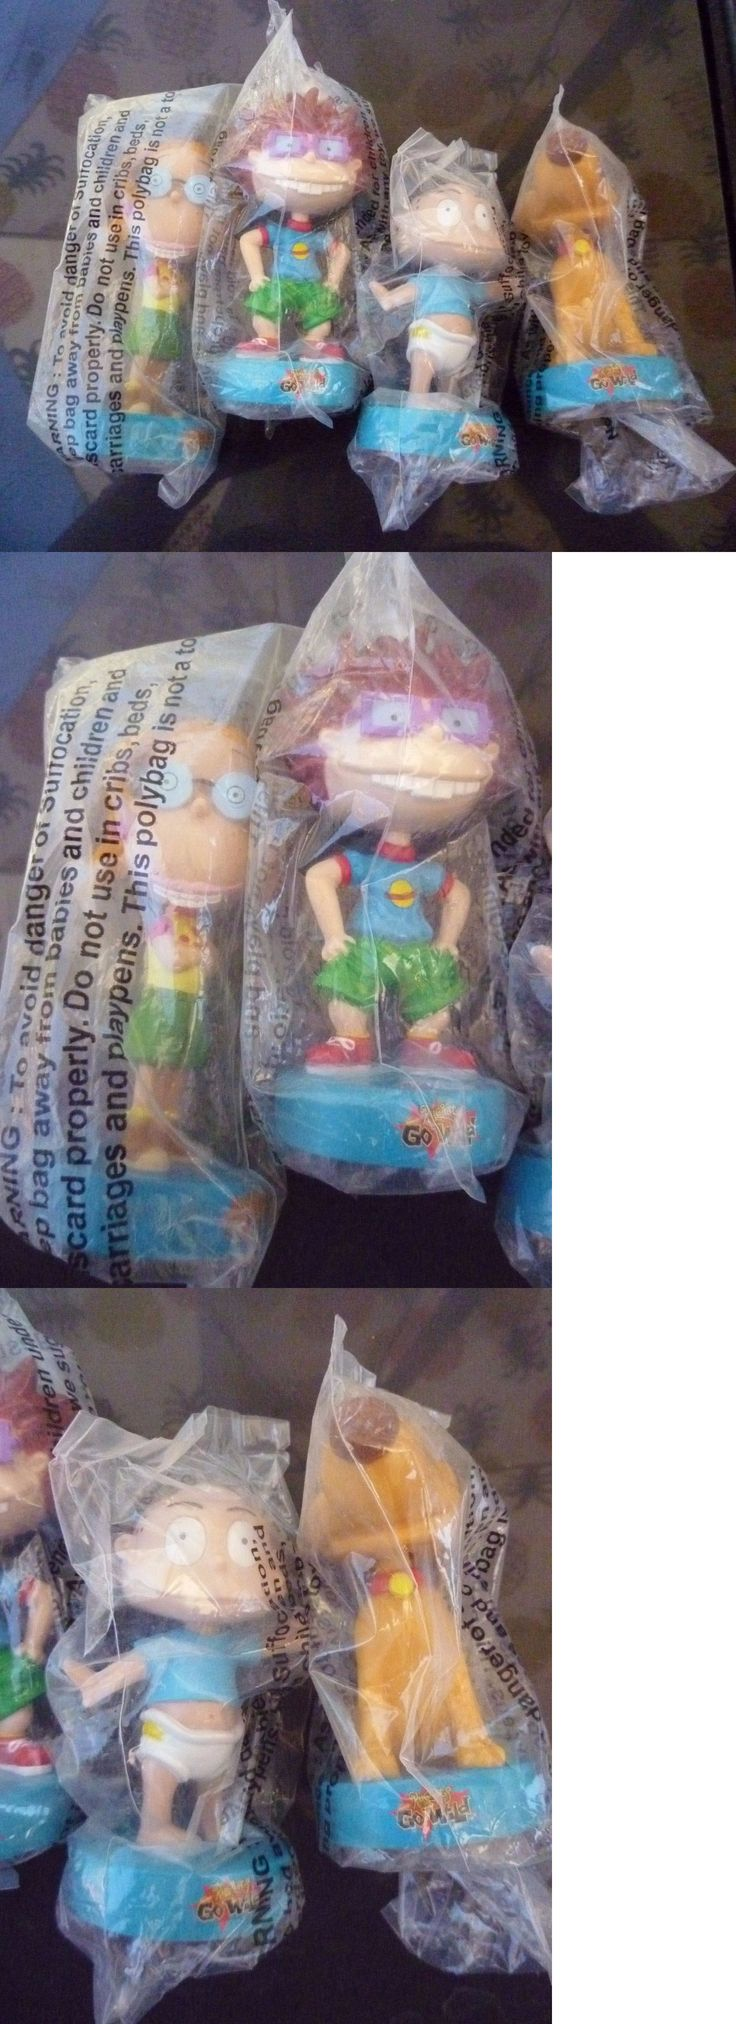 Rugrats 2628: Rugrats Go Wild - Thornberry Bobblehead Figures Skippy Promo 1993 Complete Set -> BUY IT NOW ONLY: $69 on eBay!